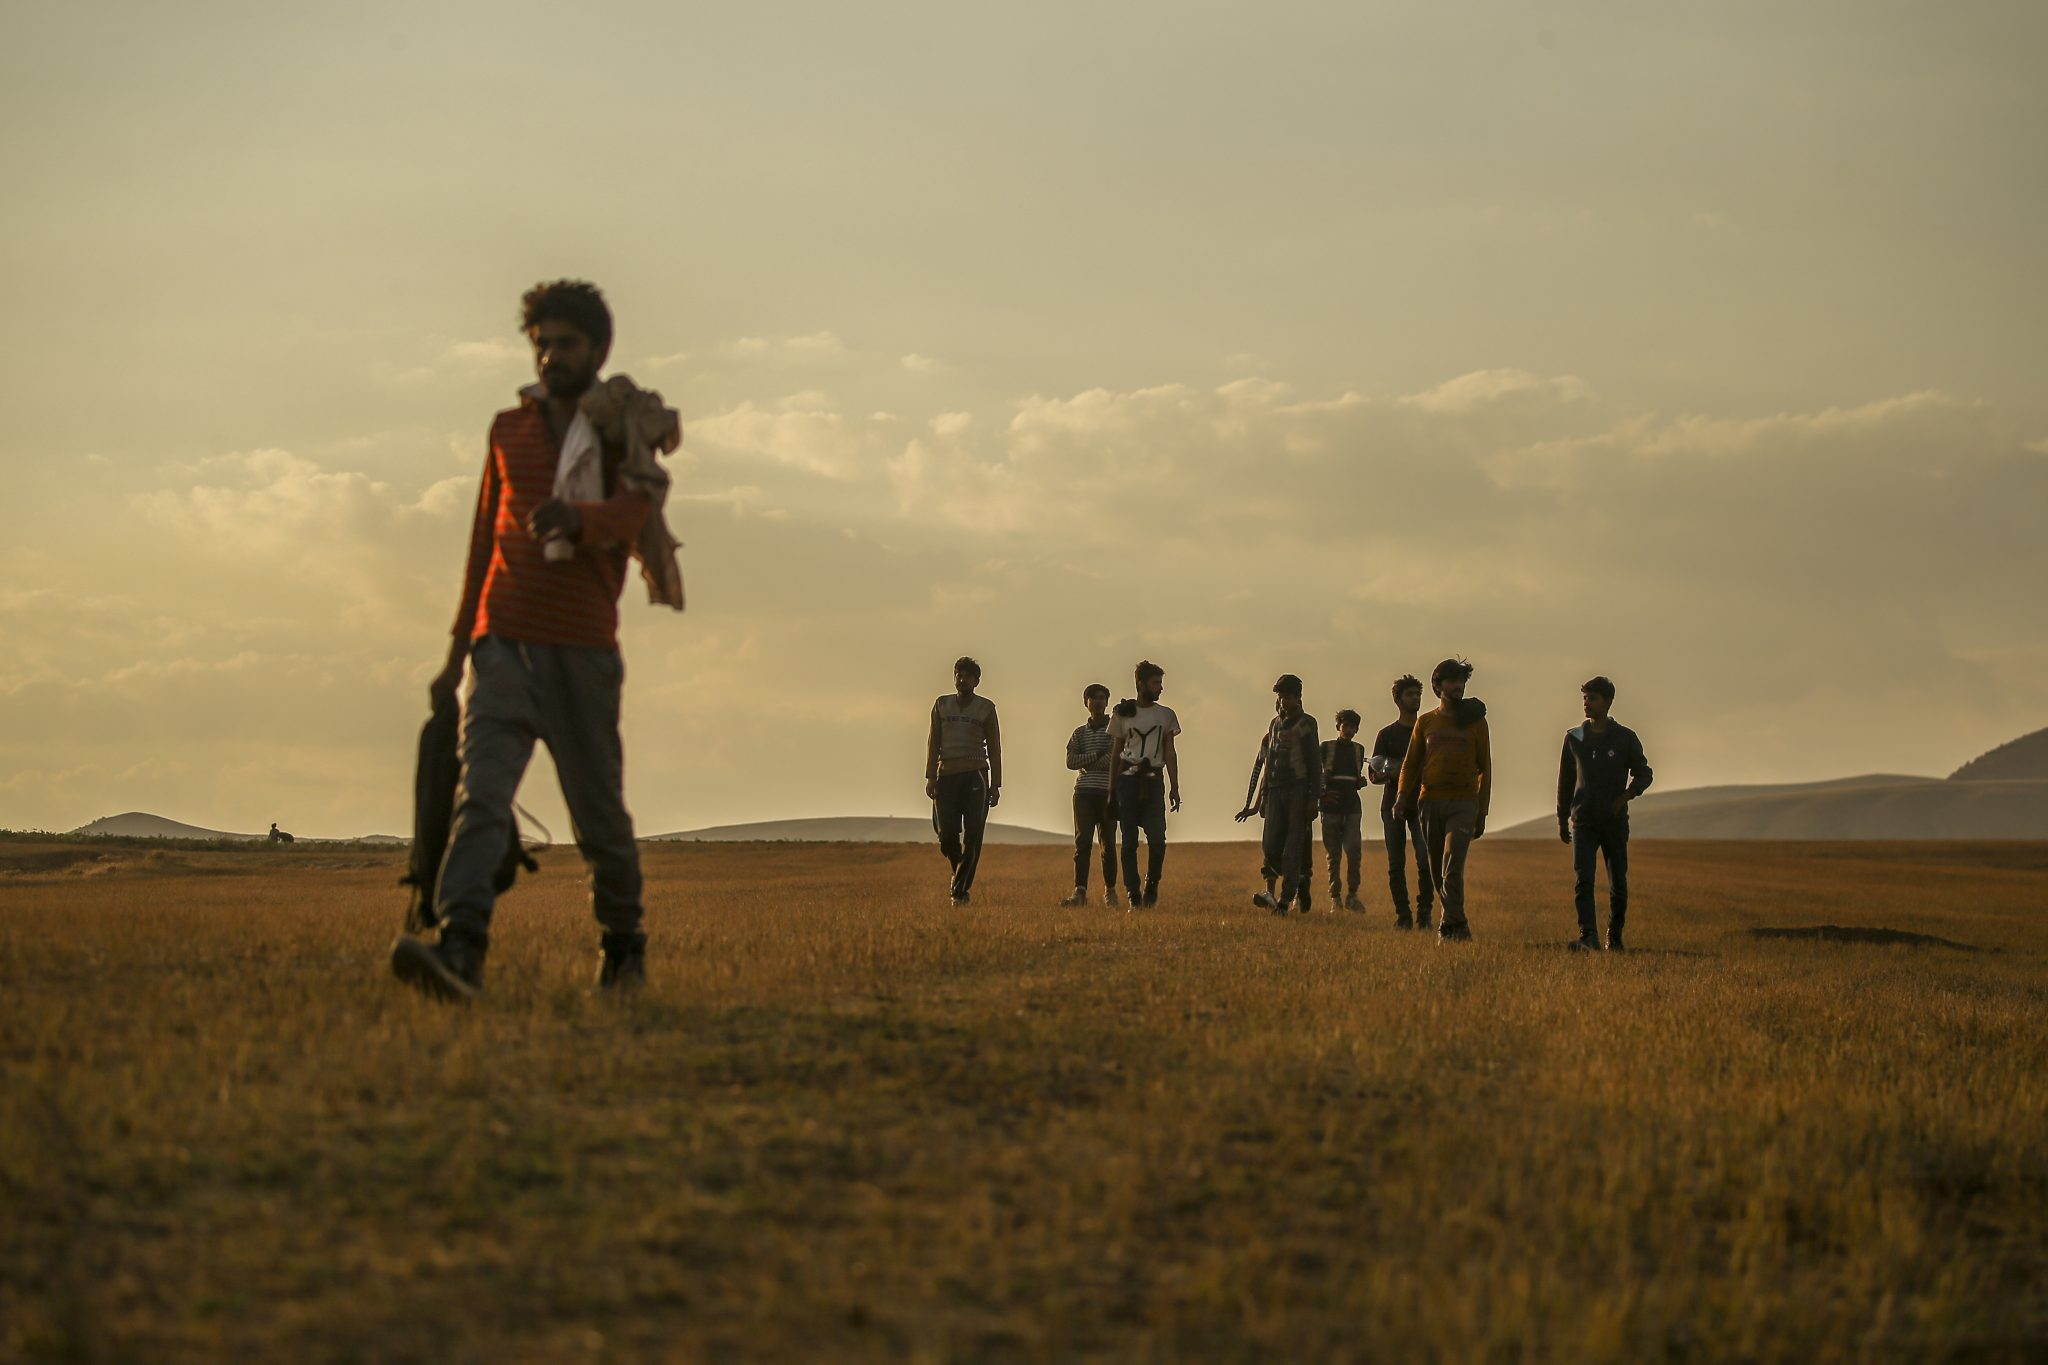 Young men who say they deserted the Afghan military and fled to Turkey through Iran walk in the countryside in Tatvan, eastern Turkey, 17-08-2021. Image: Emrah Gurel/AP/Press Association Images